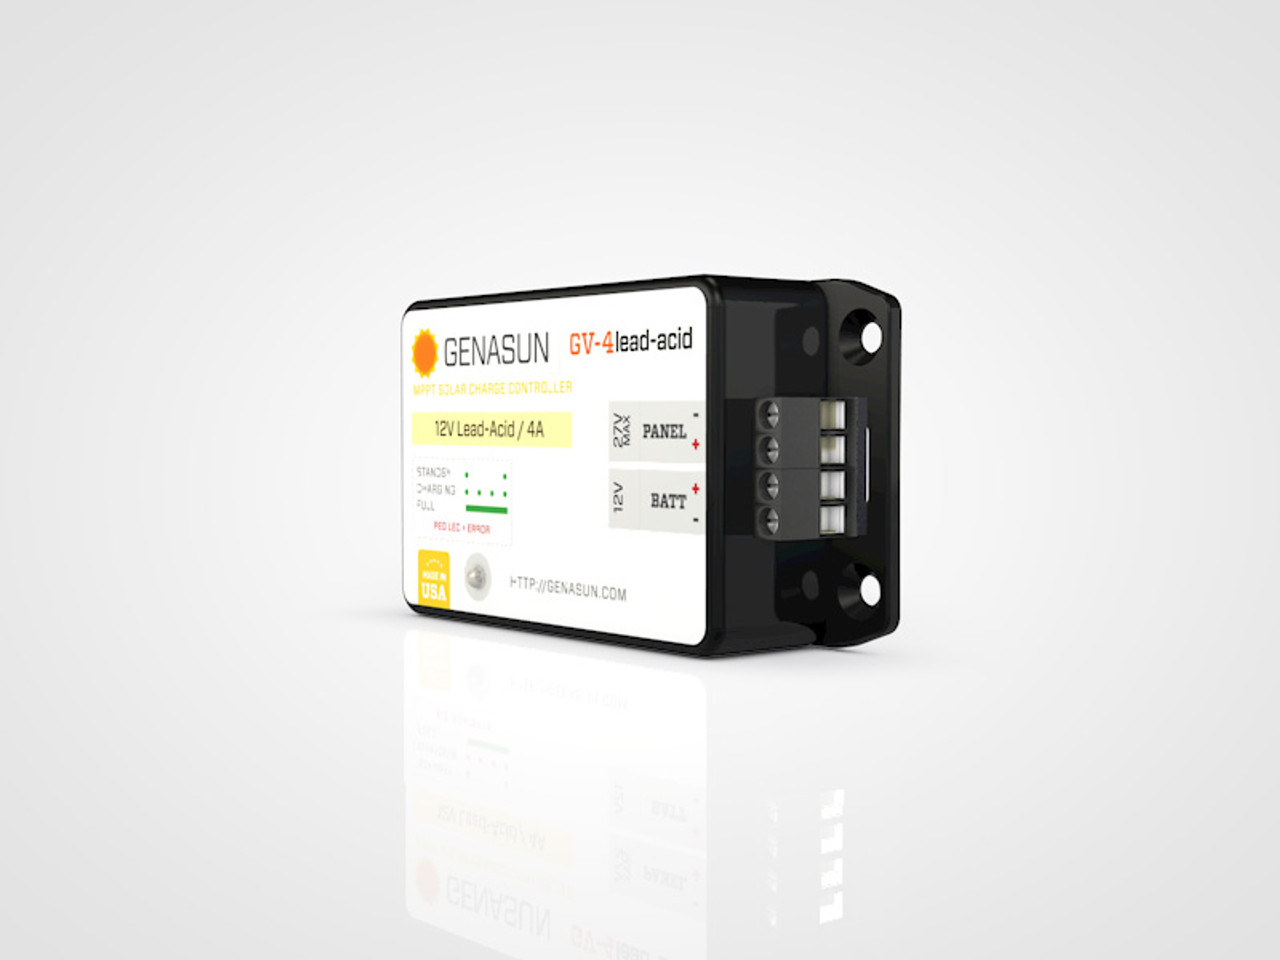 GV-4 | 50W 4A Genasun MPPT Solar Charge Controller - Pb - Right2